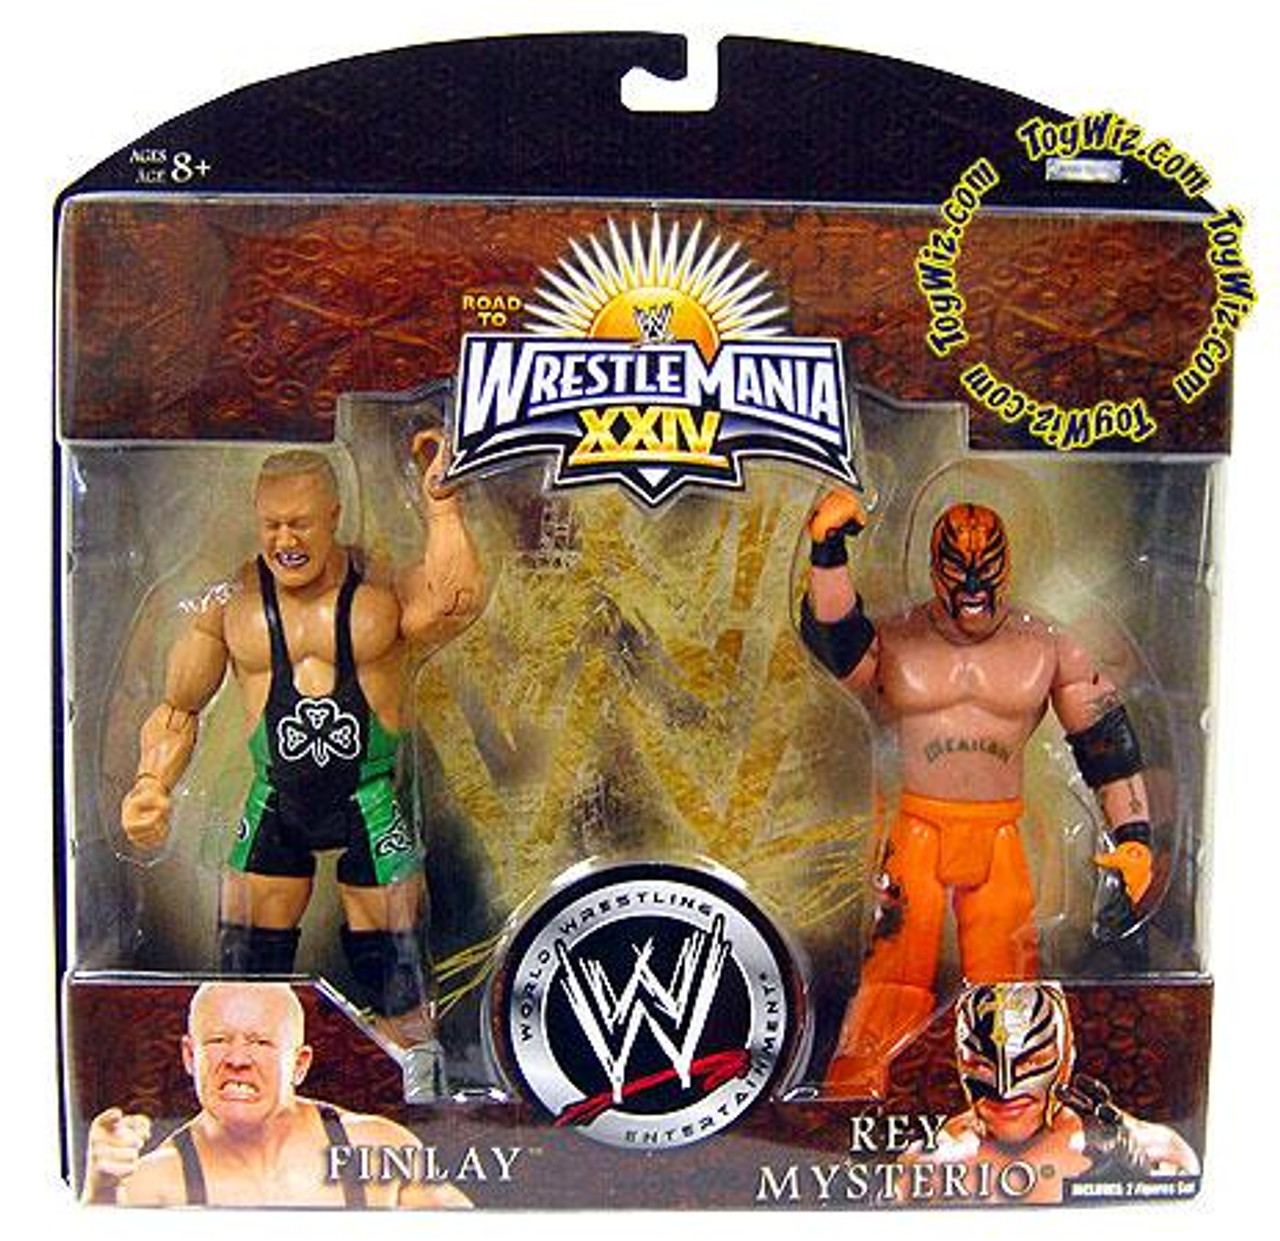 WWE Wrestling Road to WrestleMania 24 Series 2 Finlay & Rey Mysterio Exclusive Action Figure 2-Pack